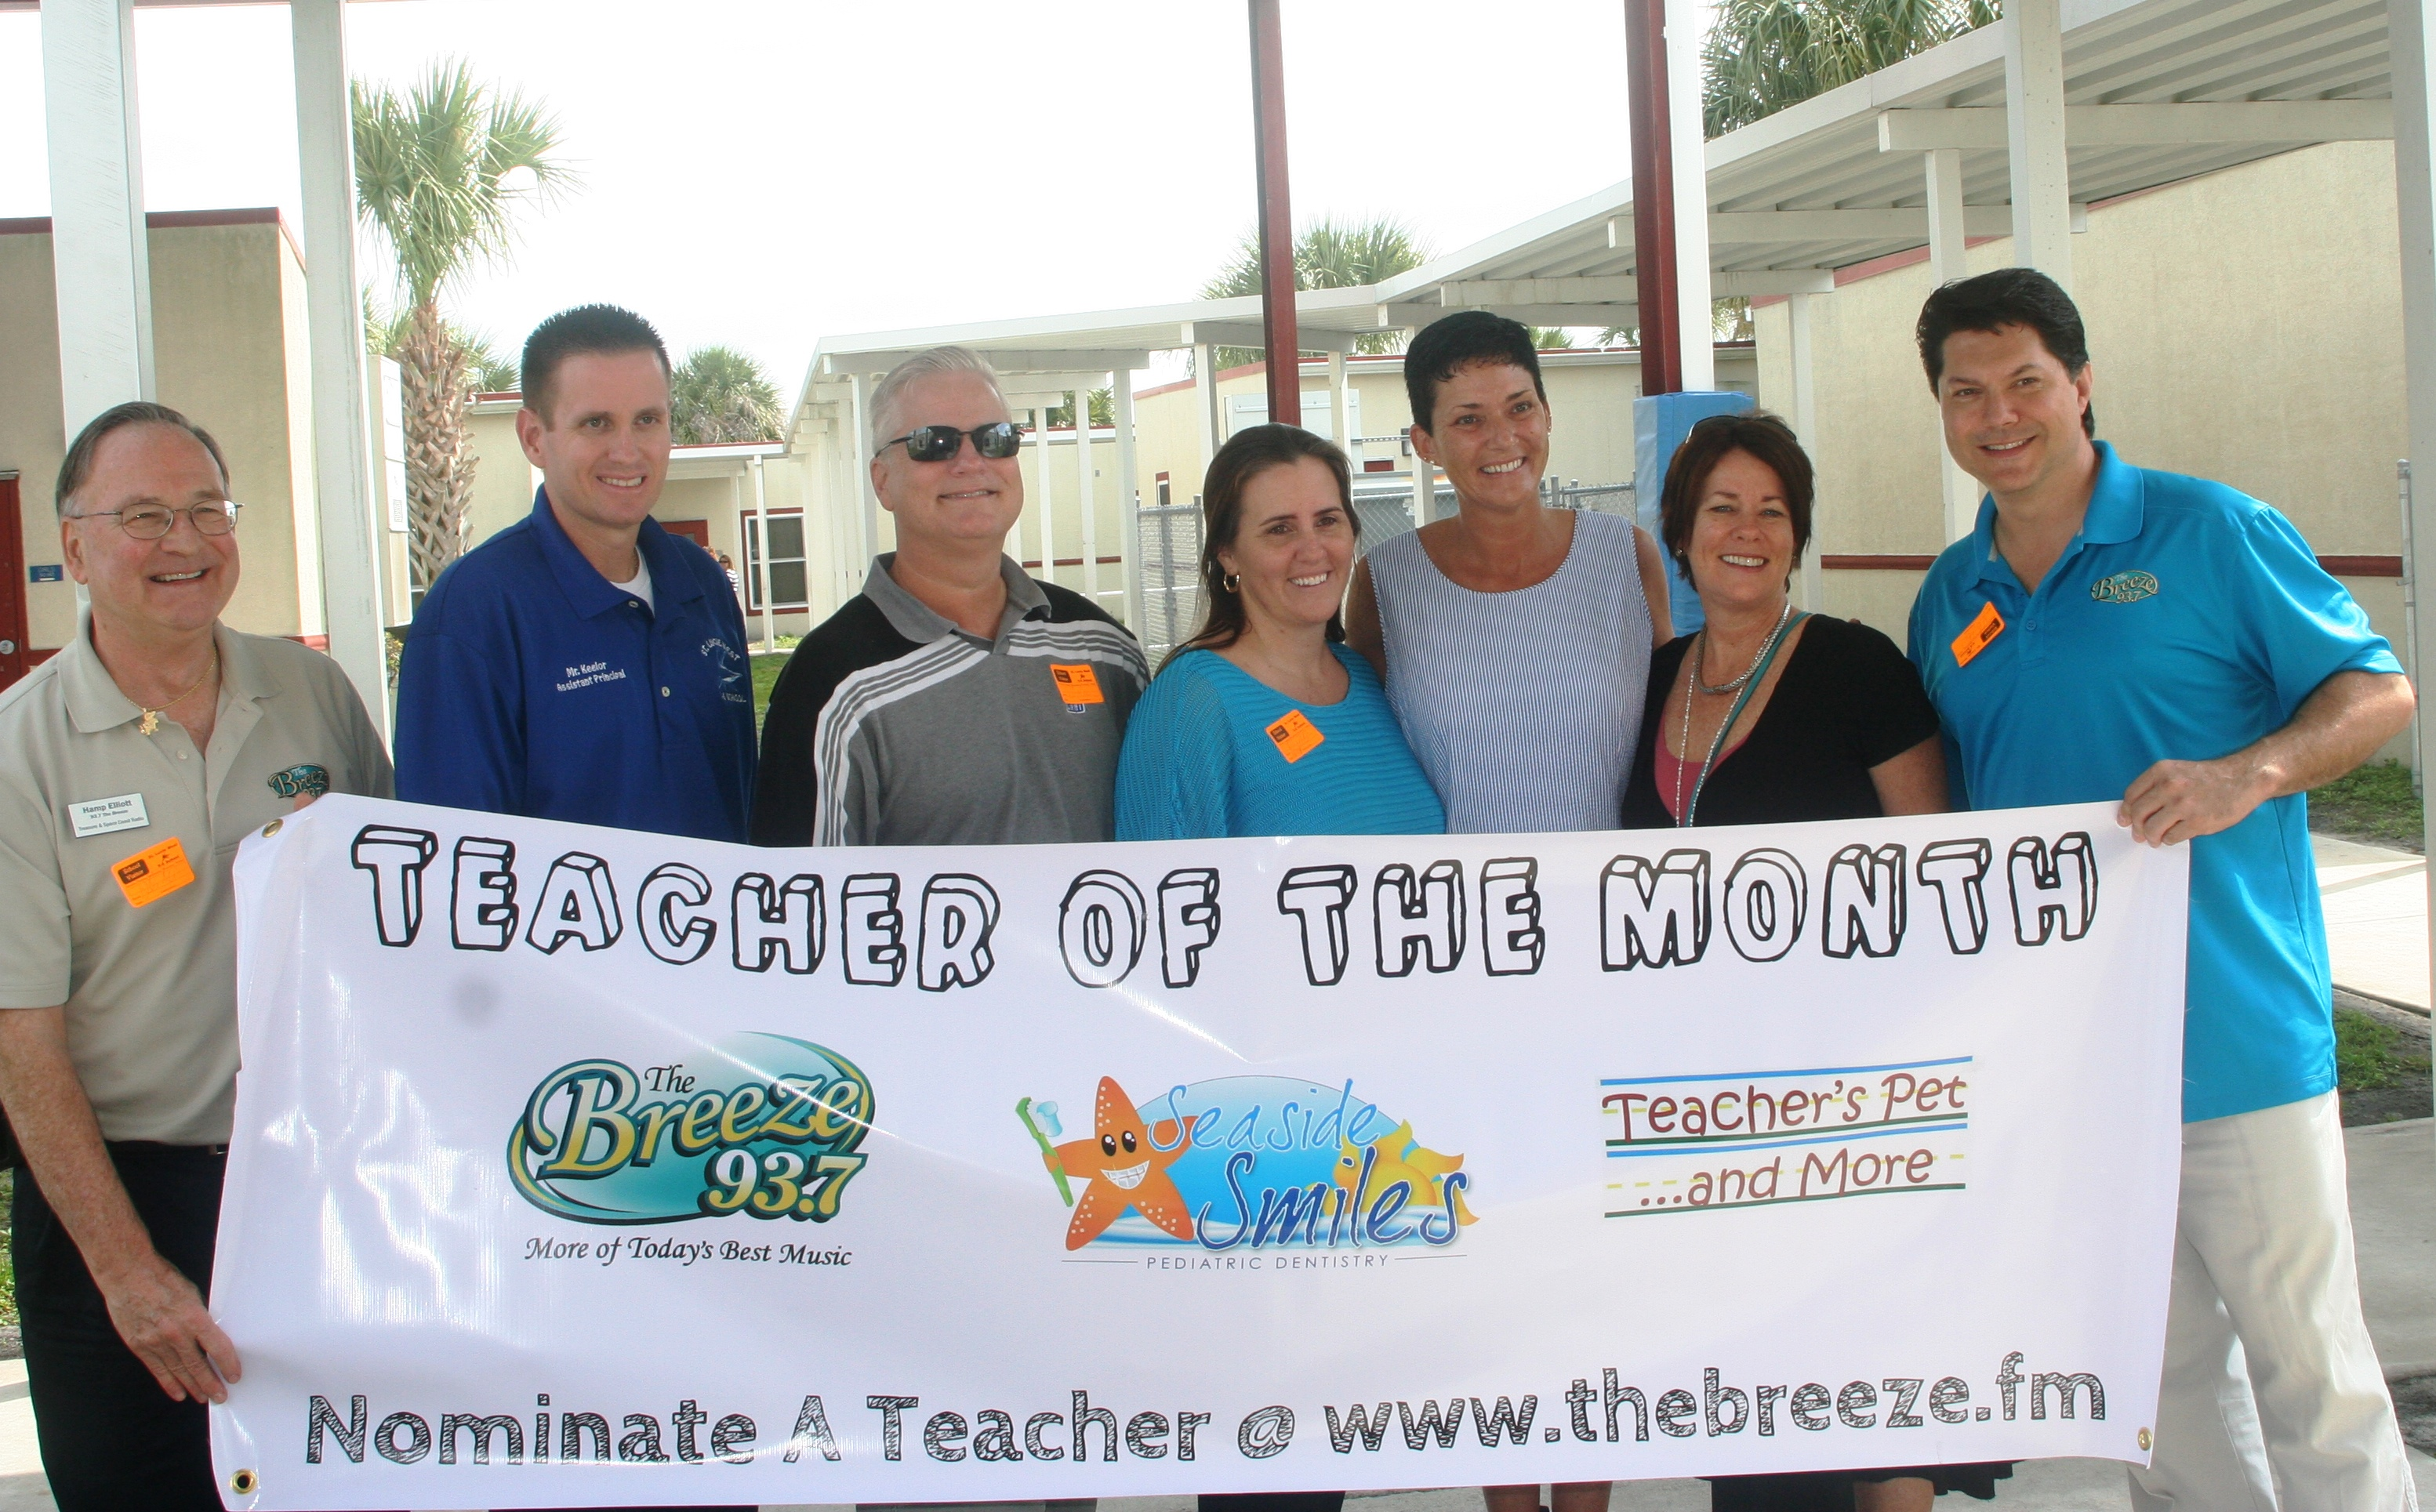 St. Lucie West K8 teacher surprised with honor